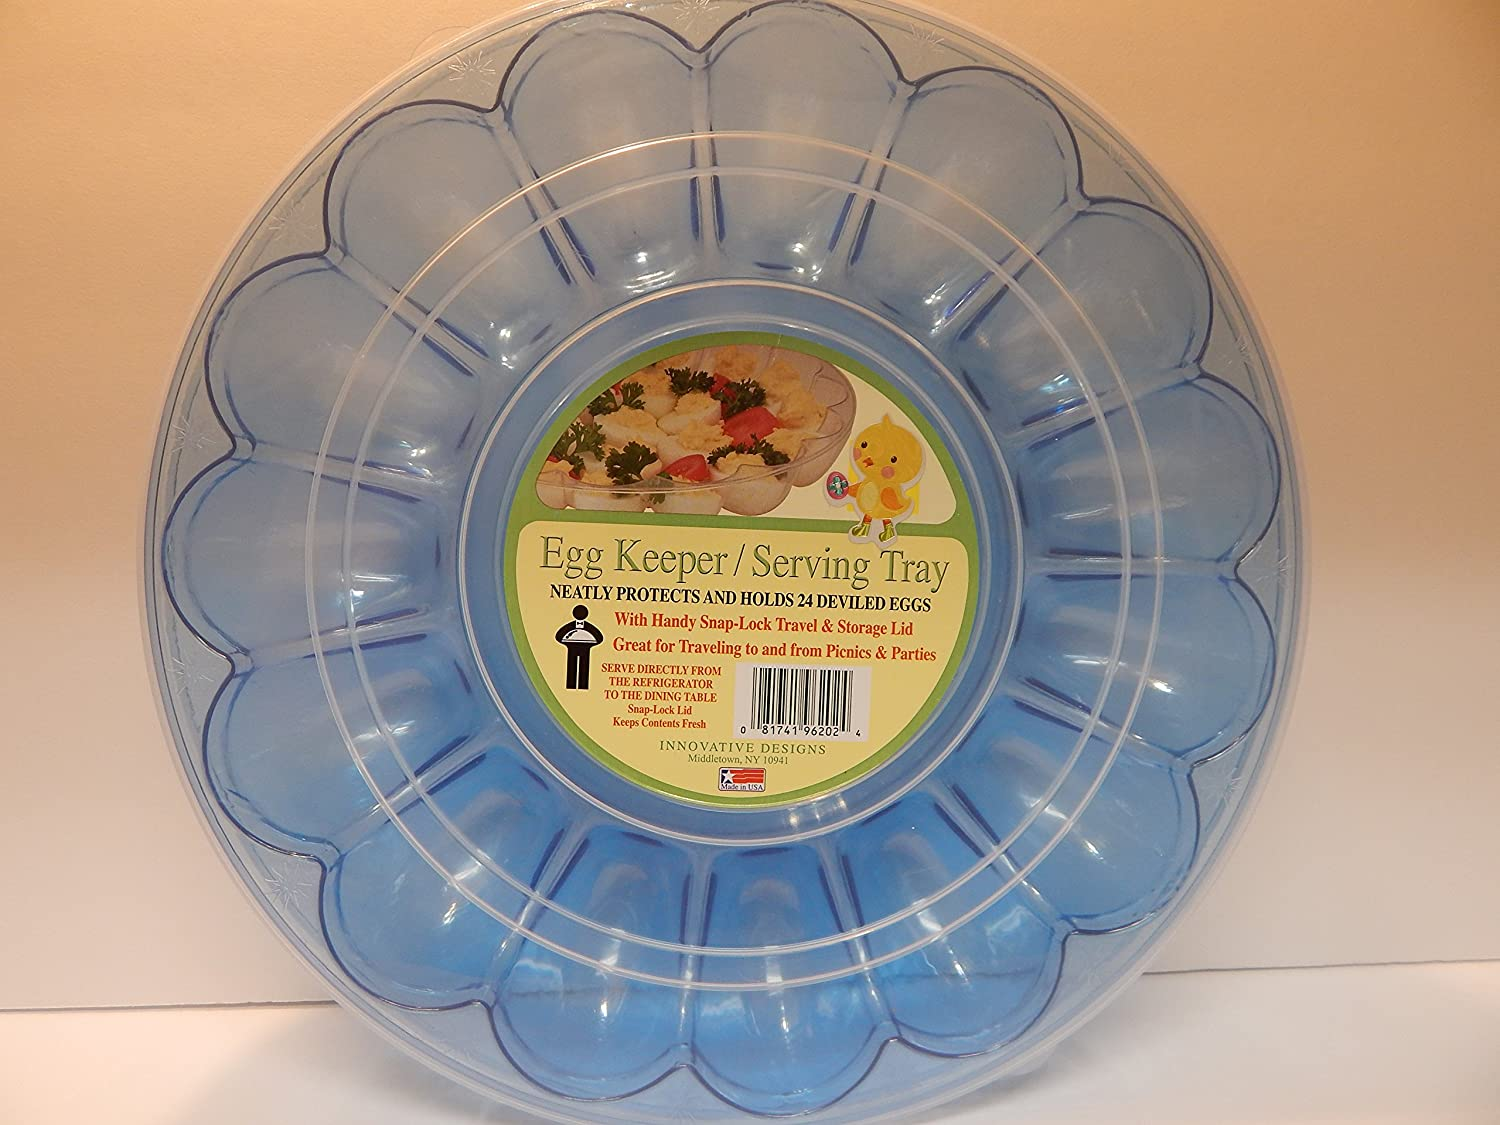 Spring Holiday Dyed Eggs Easter Eggs Colored Eggs Deviled Eggs Tray with Lid Blue Holds 24 Snap On Lid Deviled Egg Tray Deviled Egg Carrier with Lid Innovative Designs